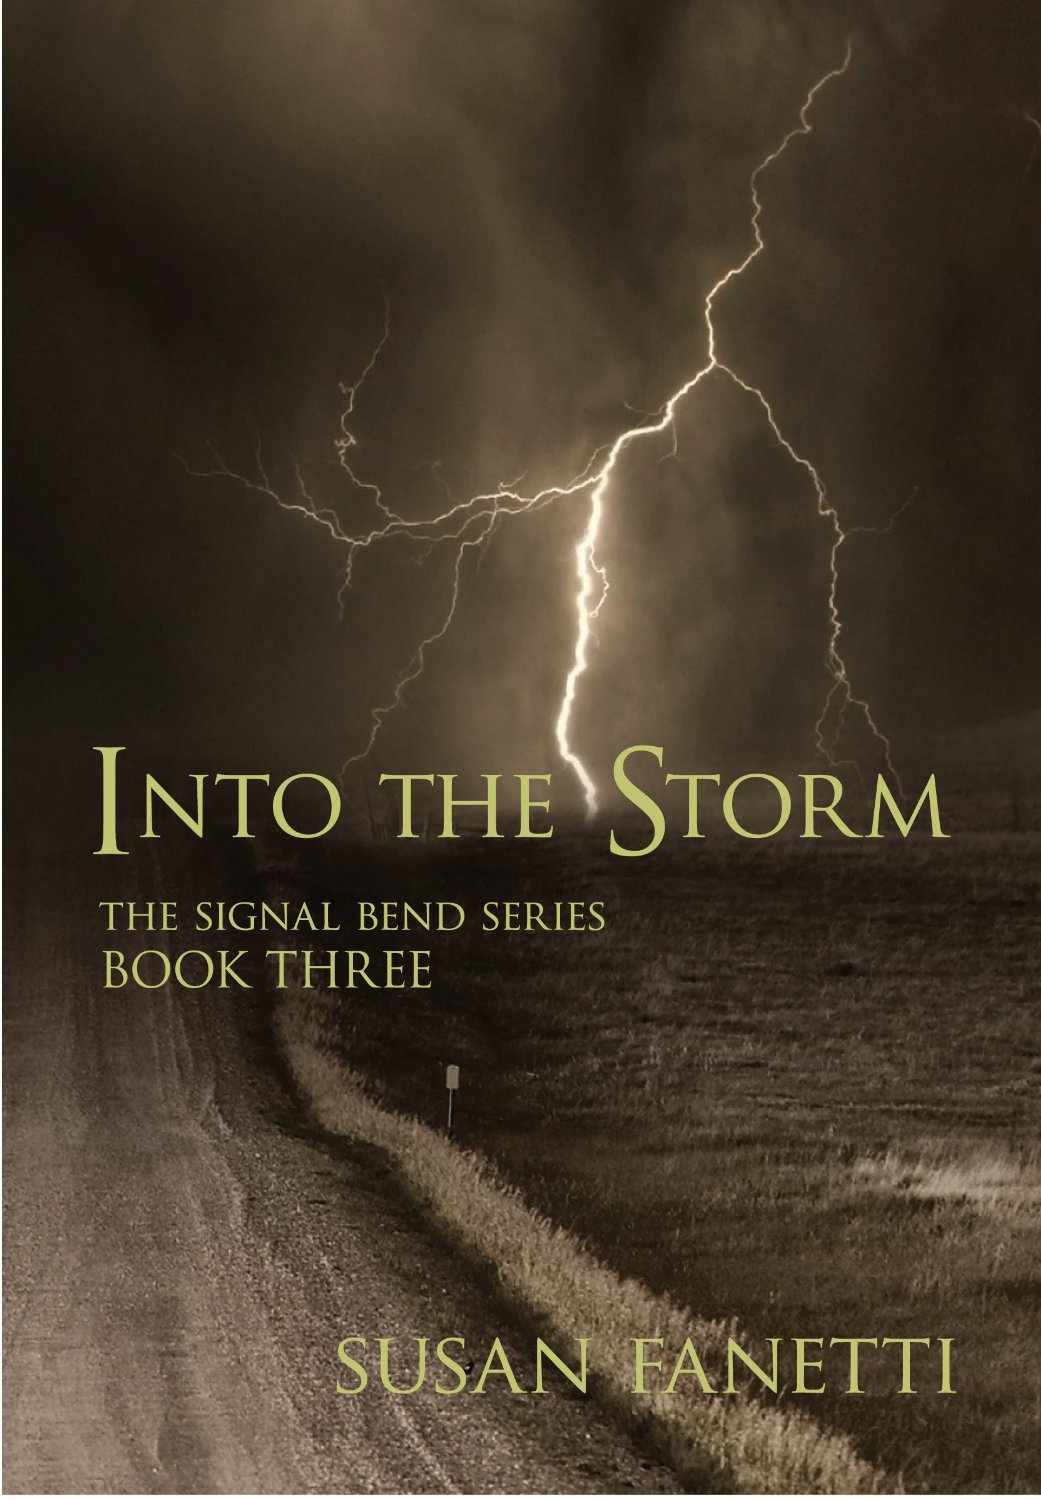 Into the Storm Book Cover